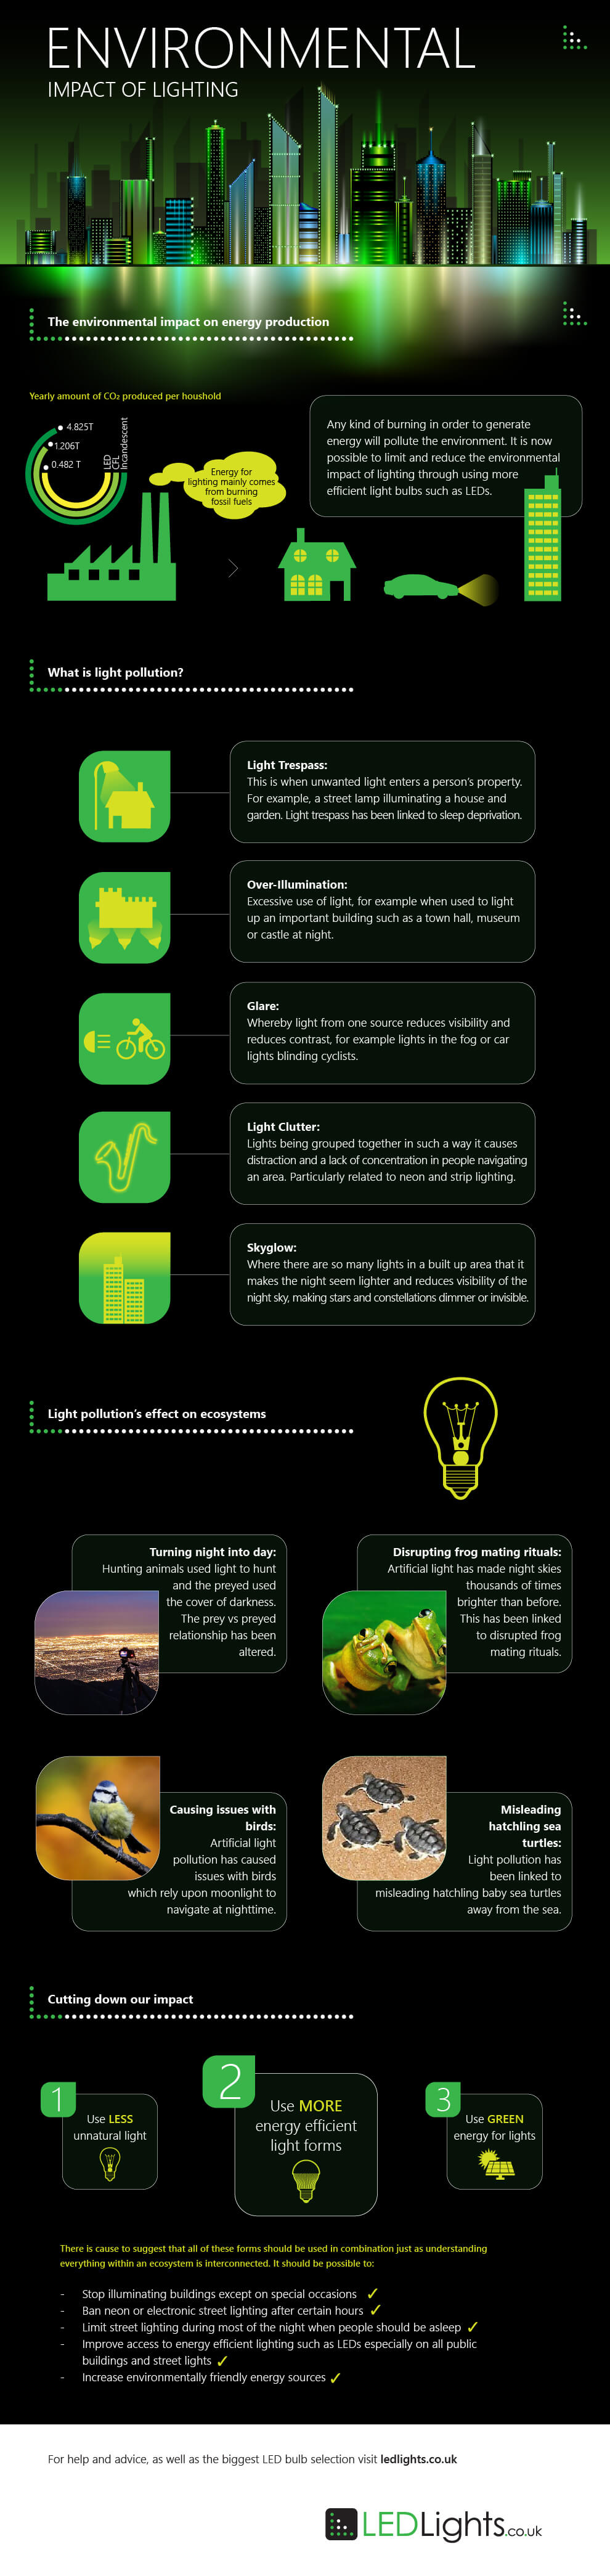 2016june13_Environmental-Impact-LEDs-Infographic